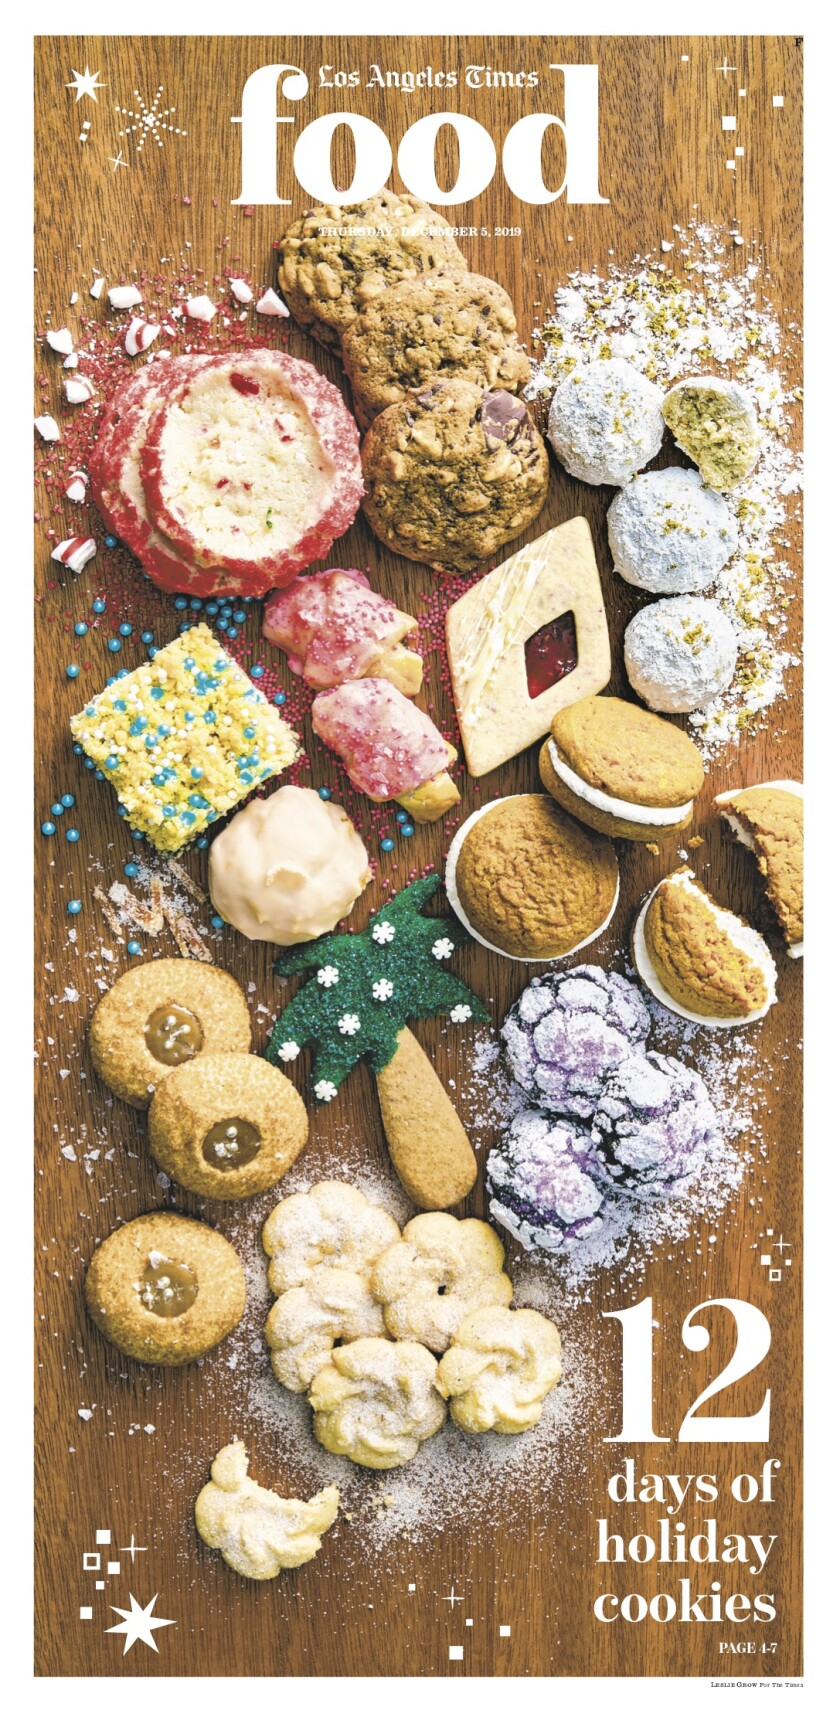 Los Angeles Times Food cover, December 5, 2019